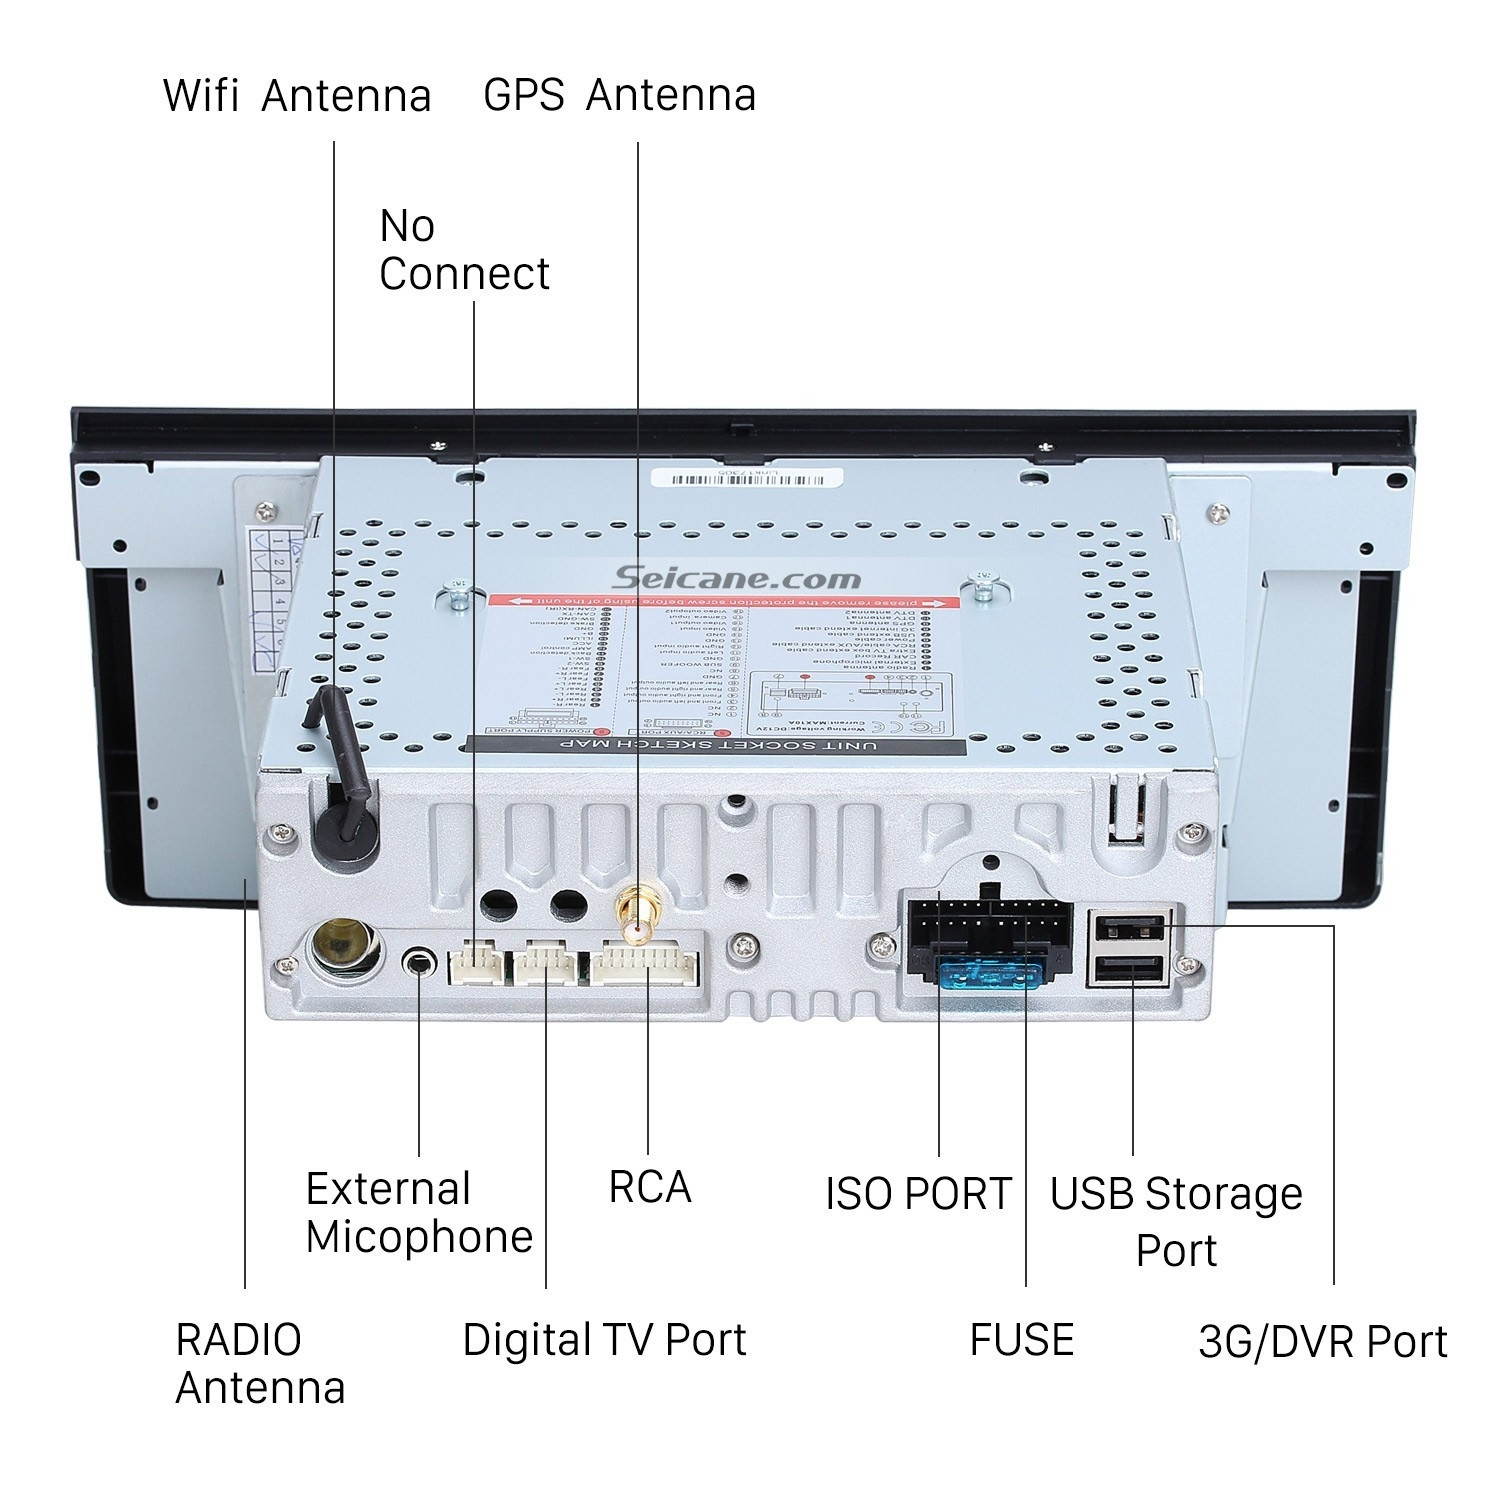 control 4 wiring diagram Download-Control4 Light Switch Wiring Diagram Print Wiring Diagram Australia Fresh Control 4 Wiring Diagram 7-o